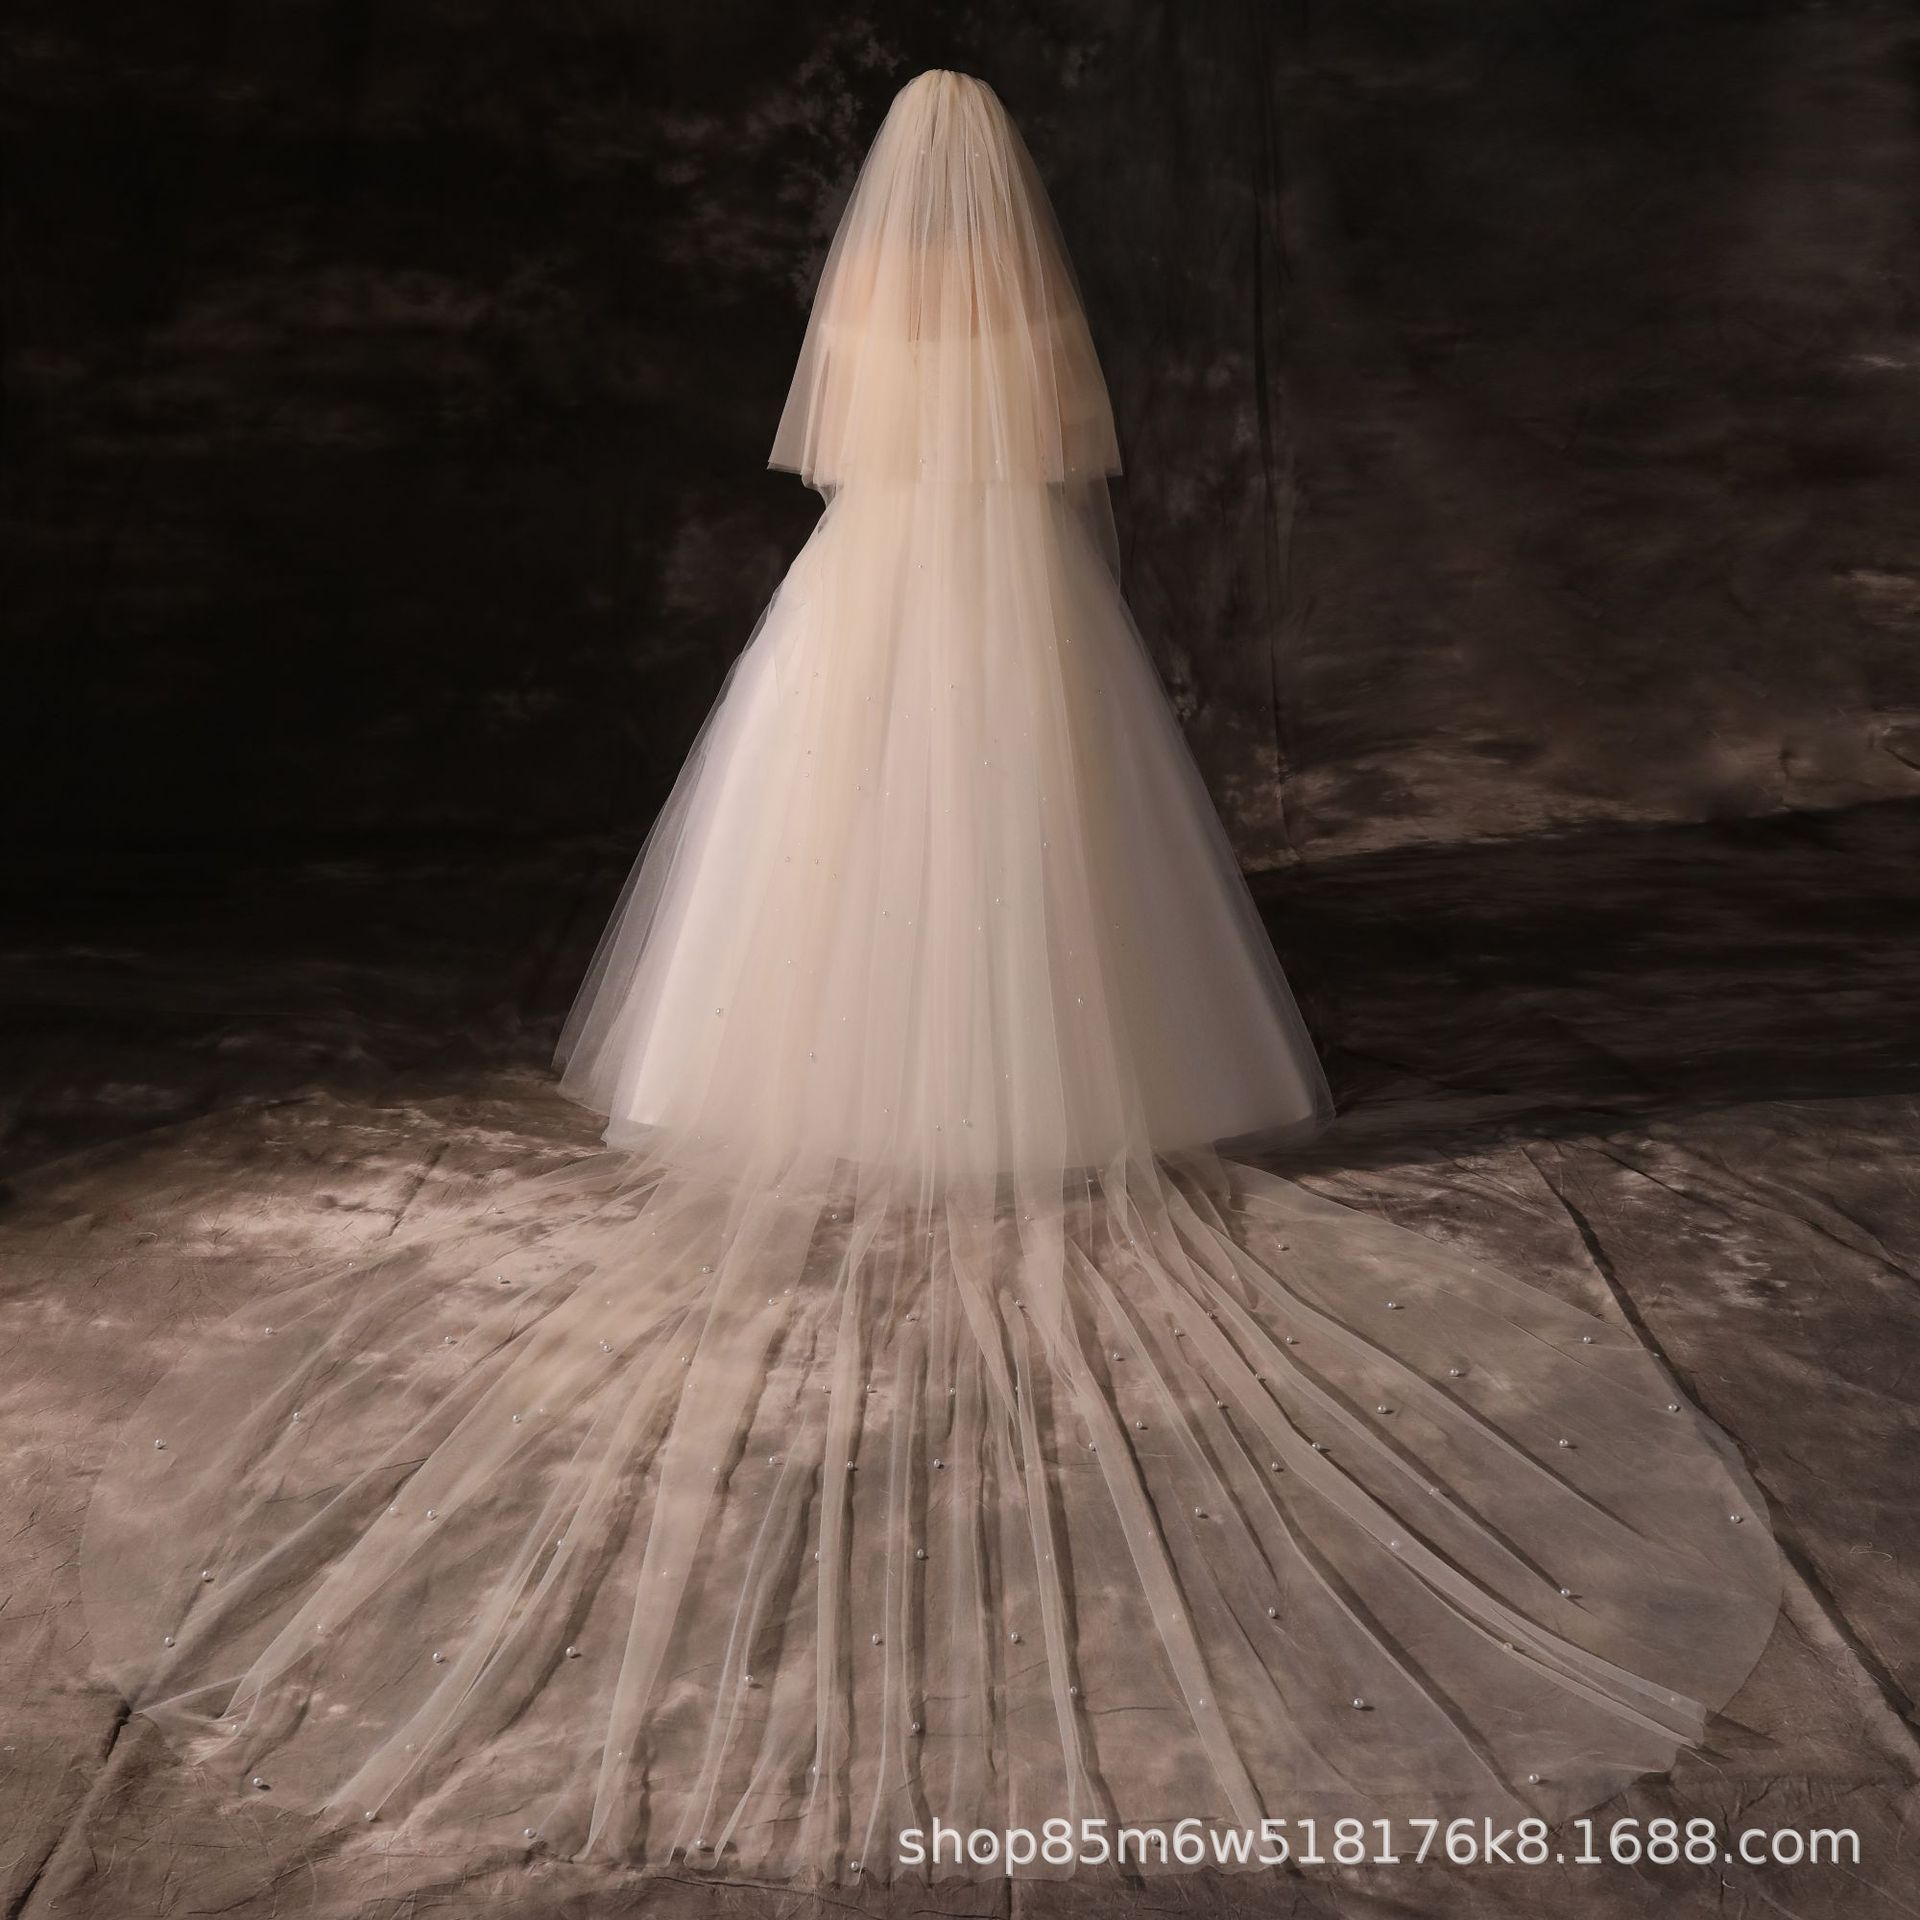 New Style Champagne Color Veil Super-Long And Large-Tailing Pearl Veil Photo Shoot Bride Wedding Accessories Double Layer Comb V